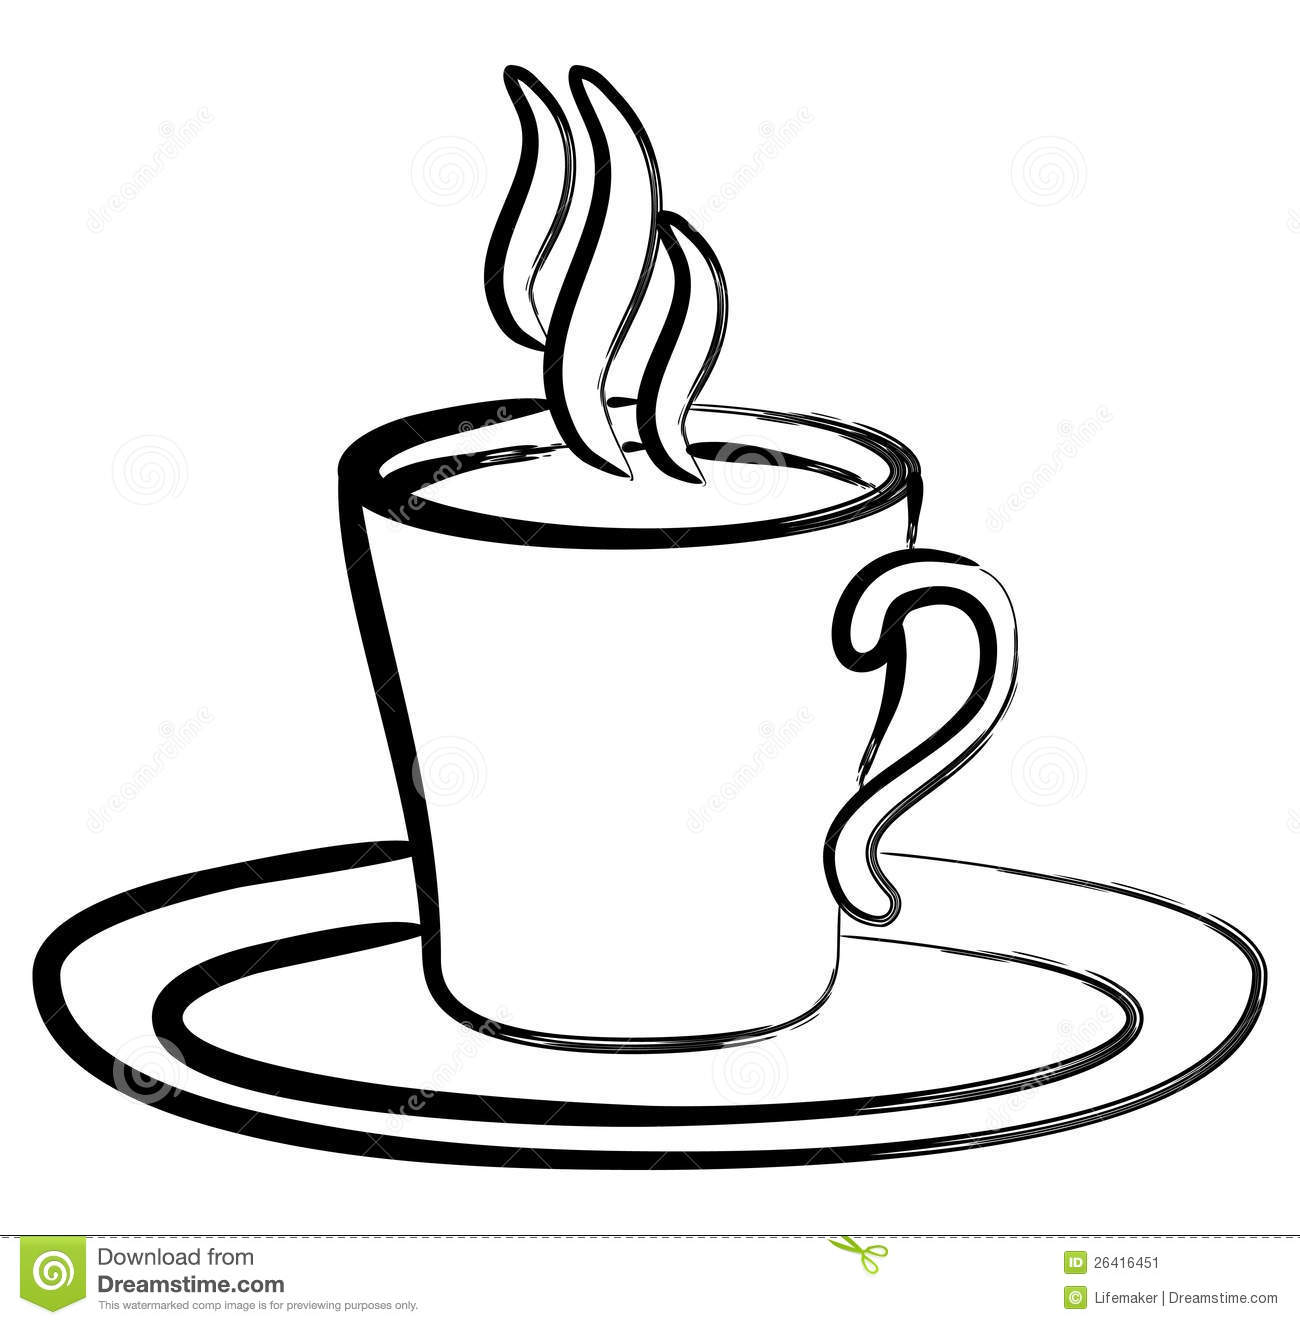 Tea clipart black and white 2 » Clipart Station.